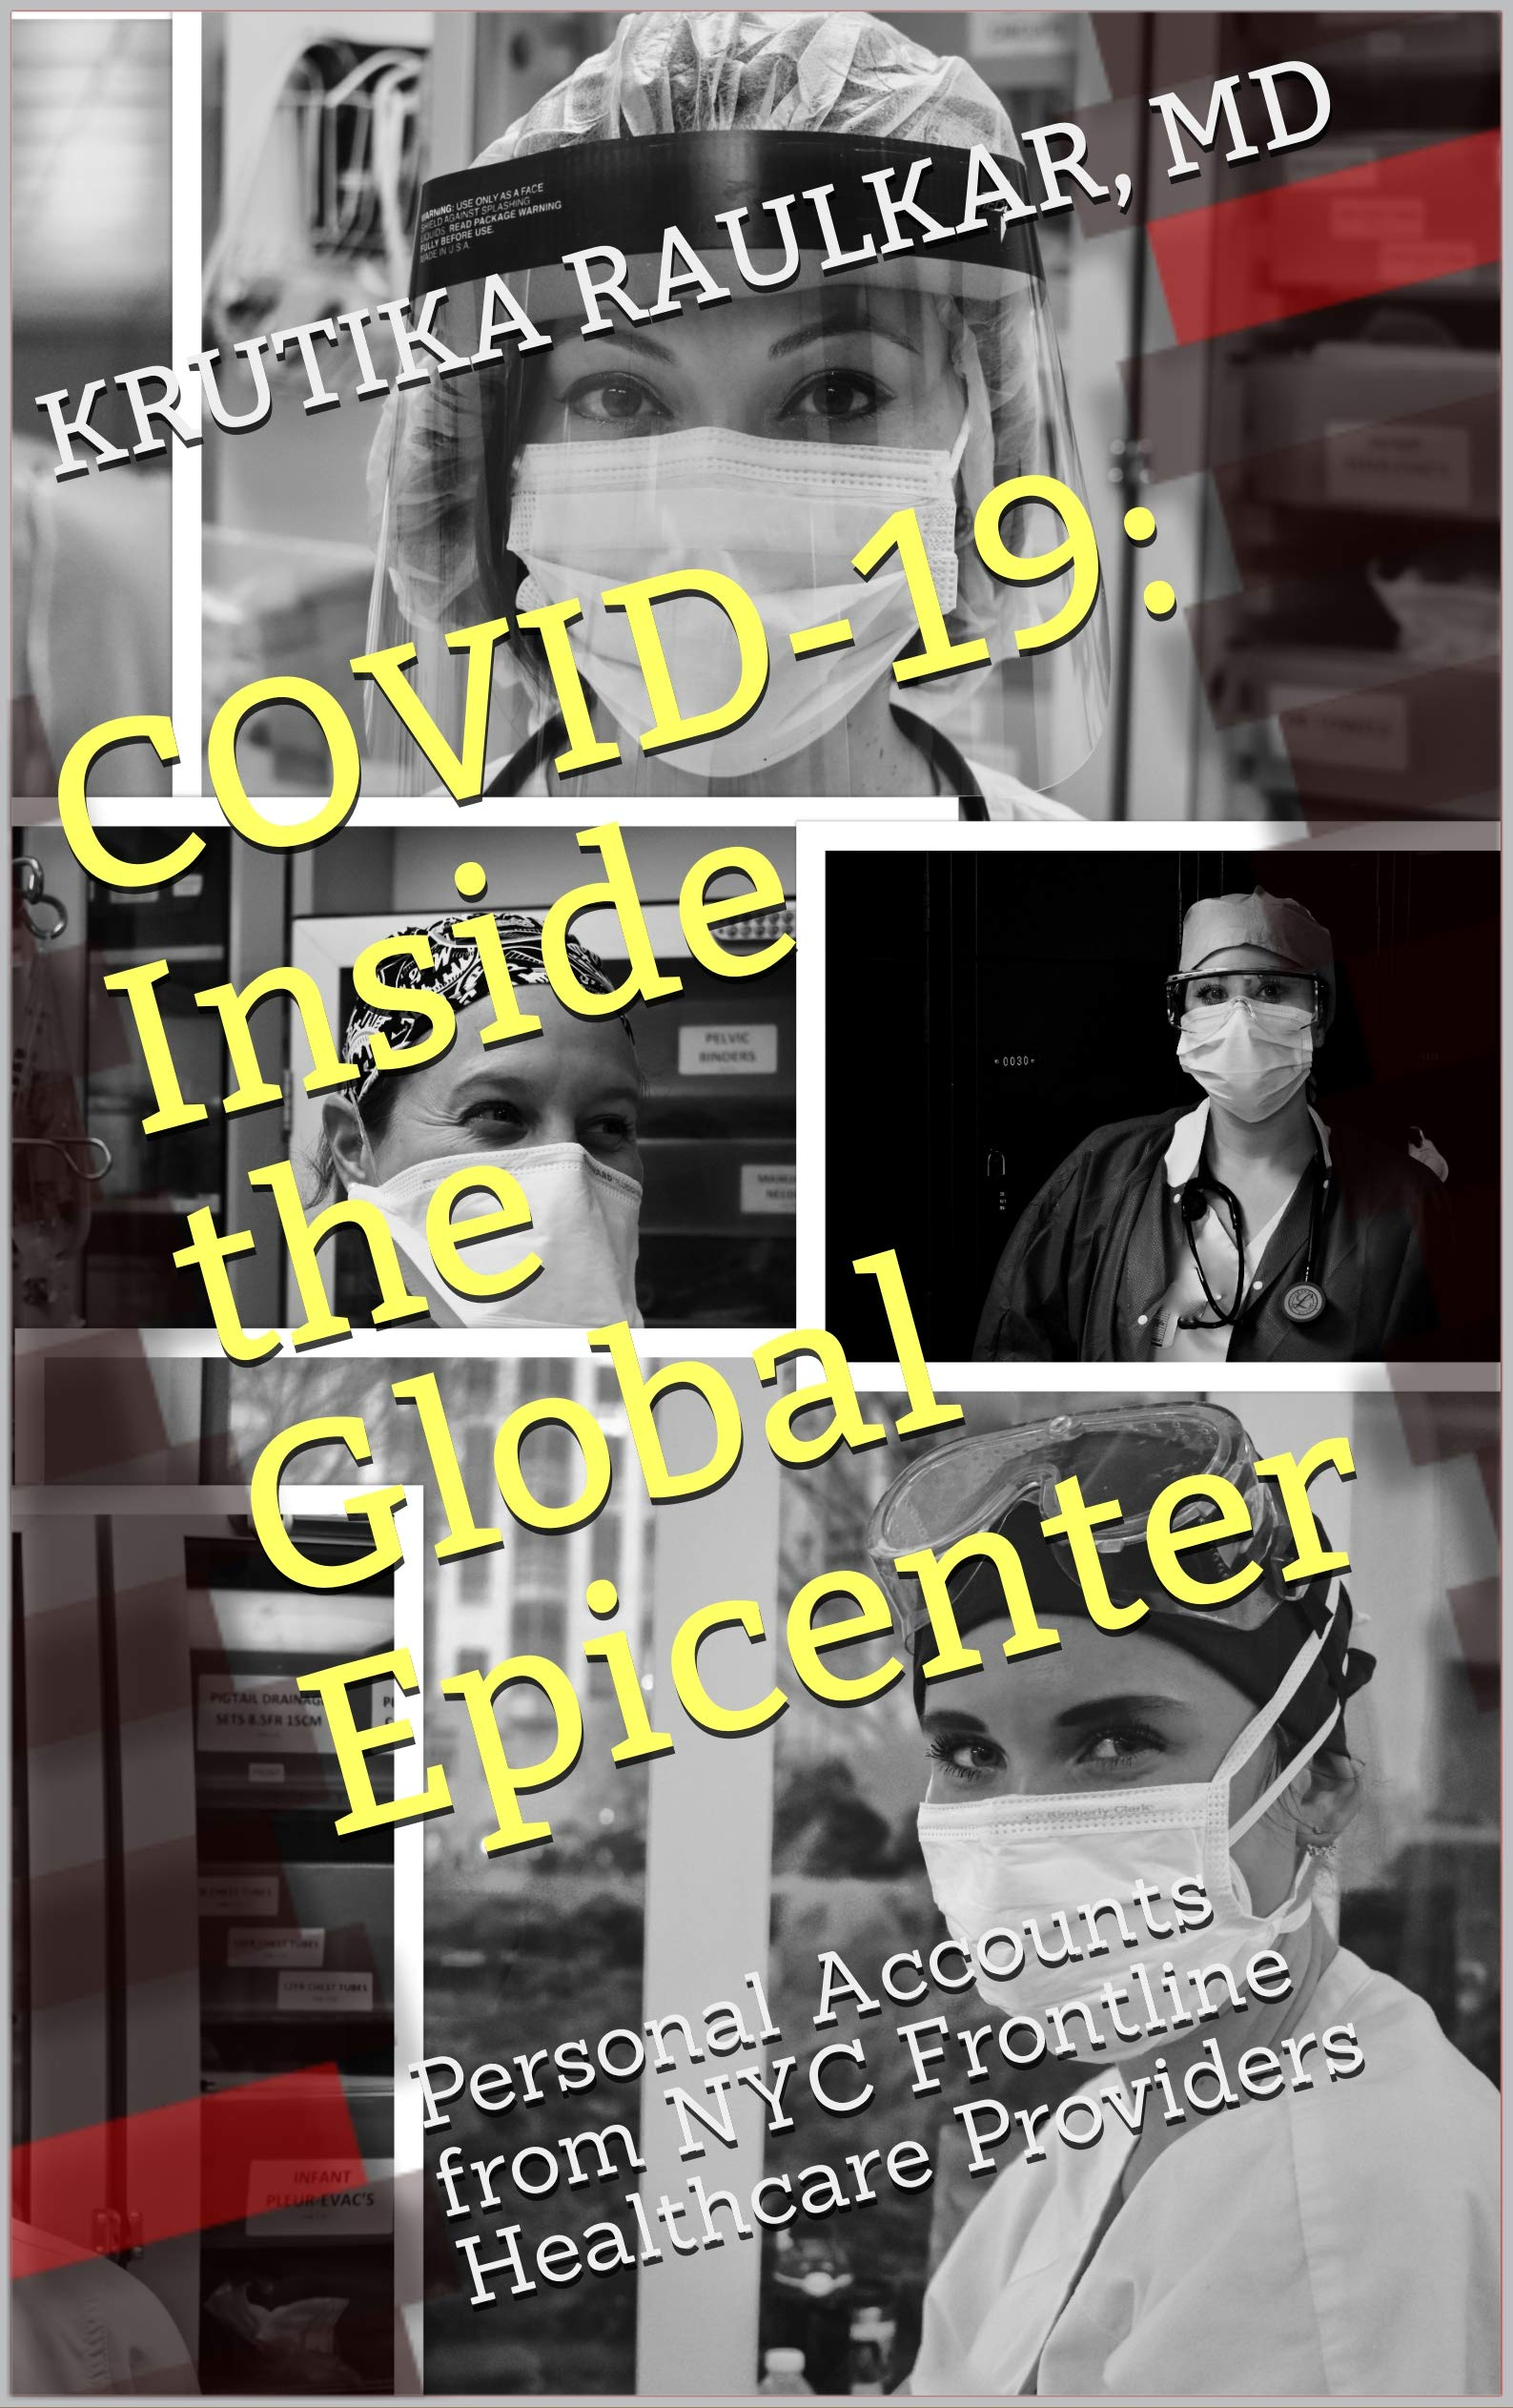 COVID-19: Inside the Global Epicenter: Personal Accounts from NYC Frontline Healthcare Providers